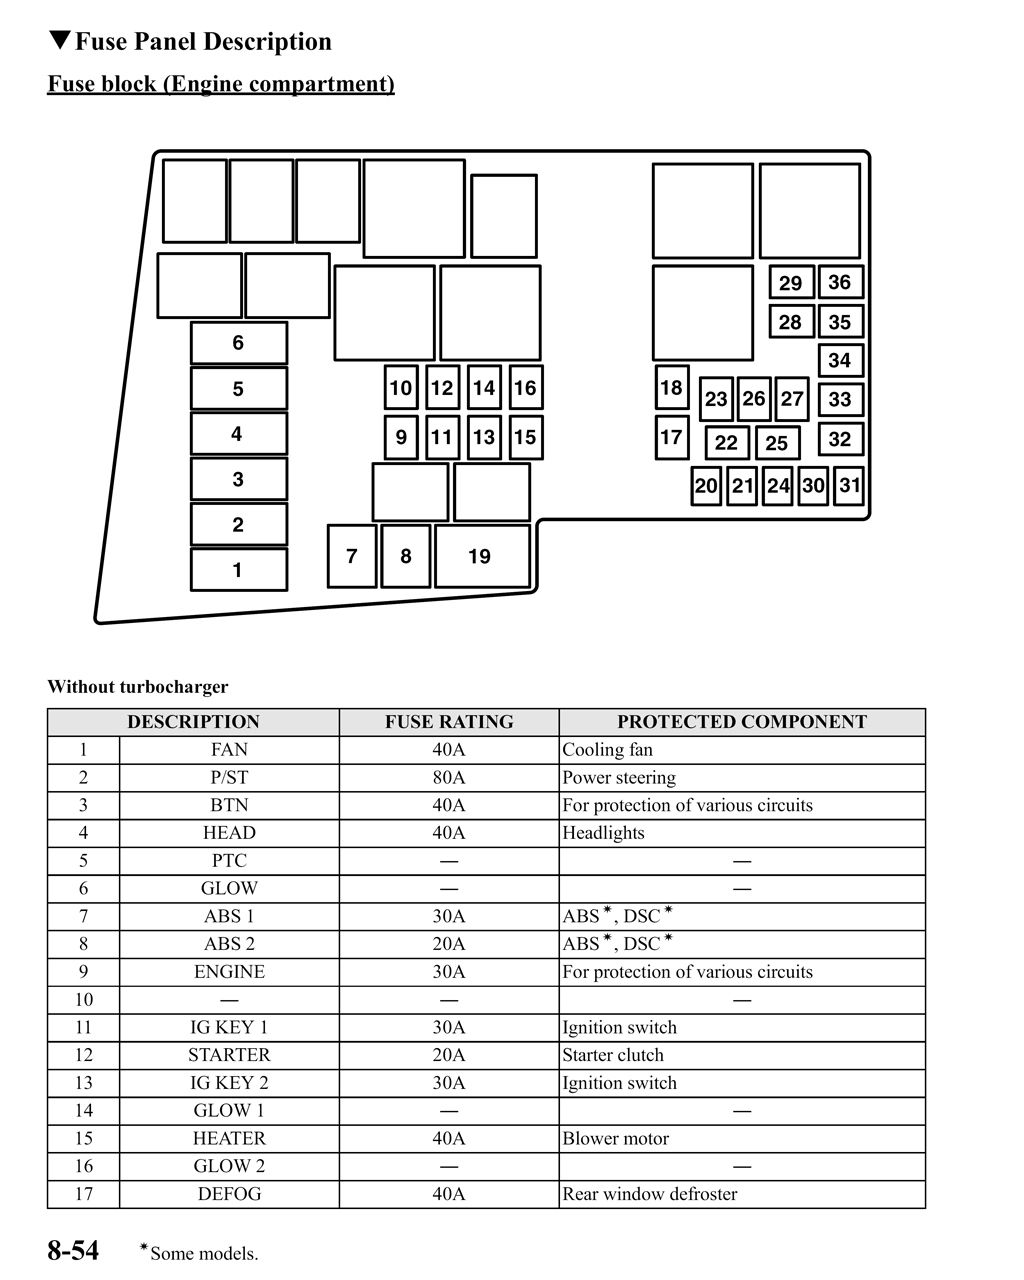 2007 Mazda 3 Fuse Box Free Wiring Diagram For You 2011 Cx7 Engine Image Layout Passenger Side